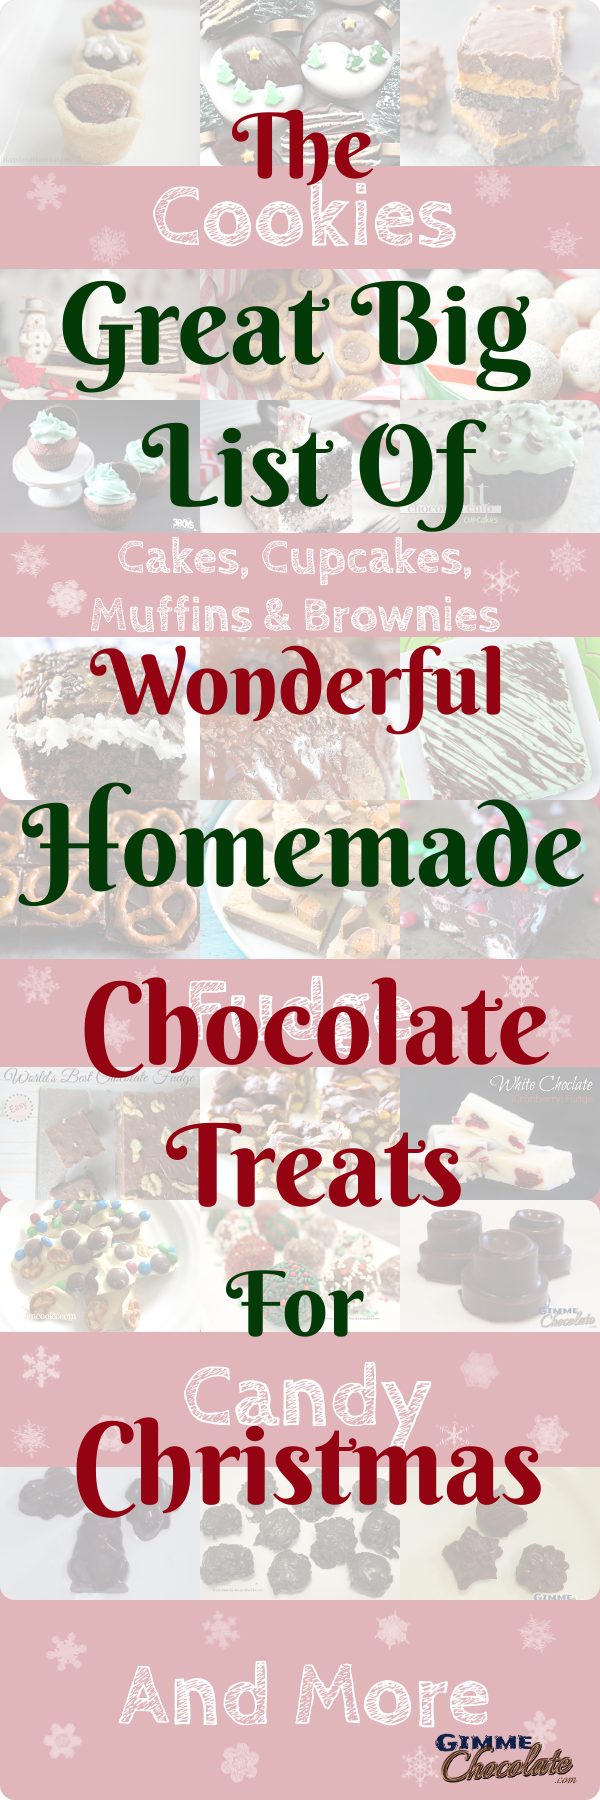 The Great Big List Of Wonderful Homemade Chocolate Treats For Christmas